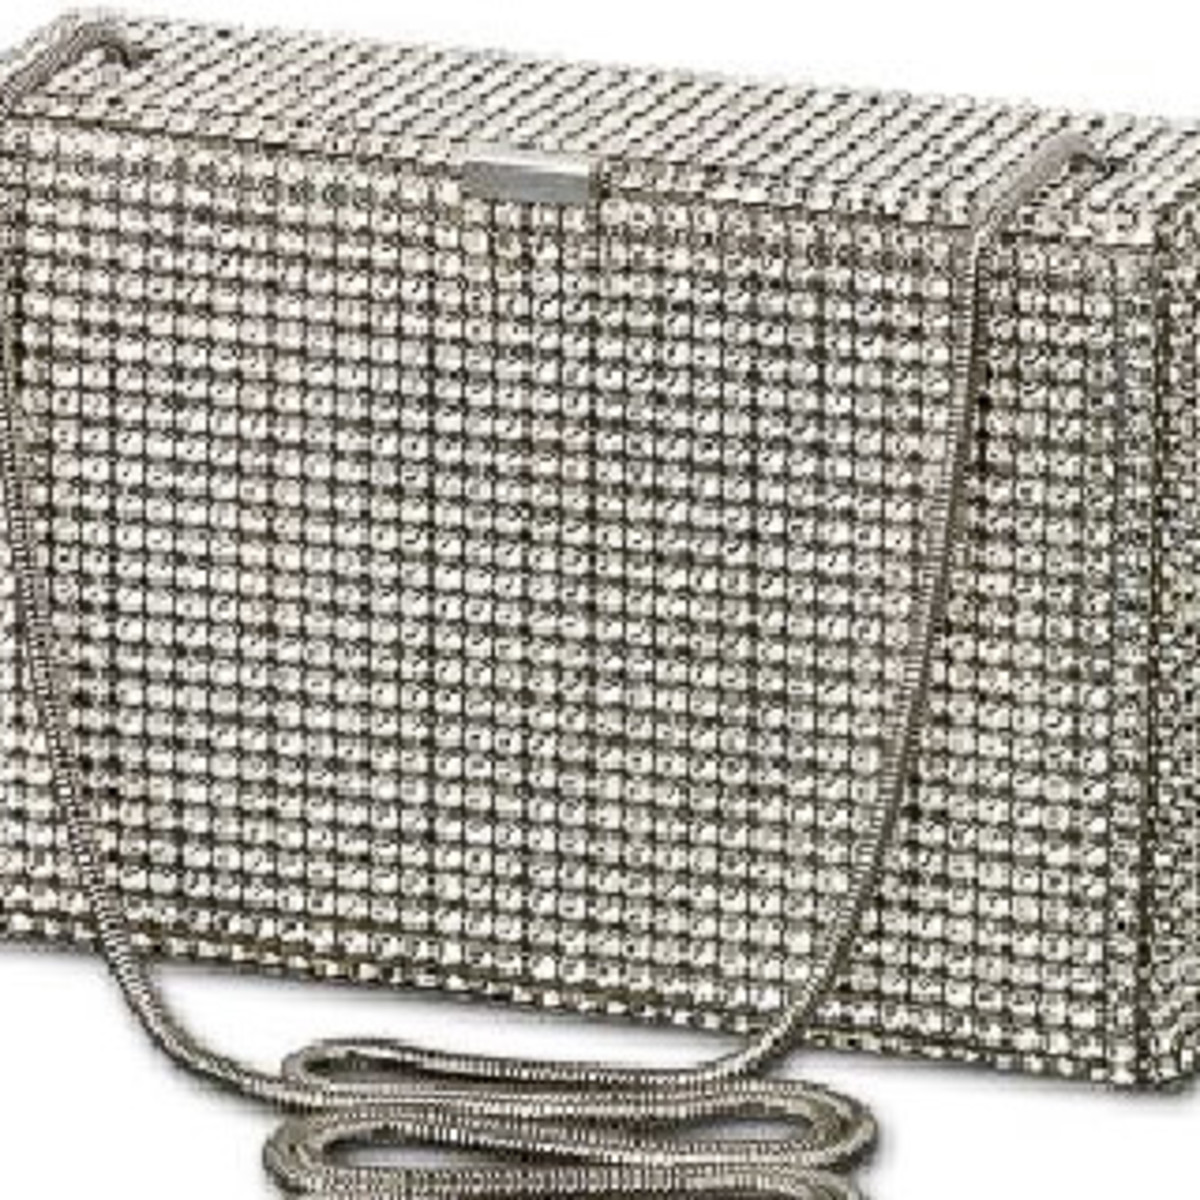 News_Heather Staible_Sex and the City_Swarovski_Kiosque_evening bag